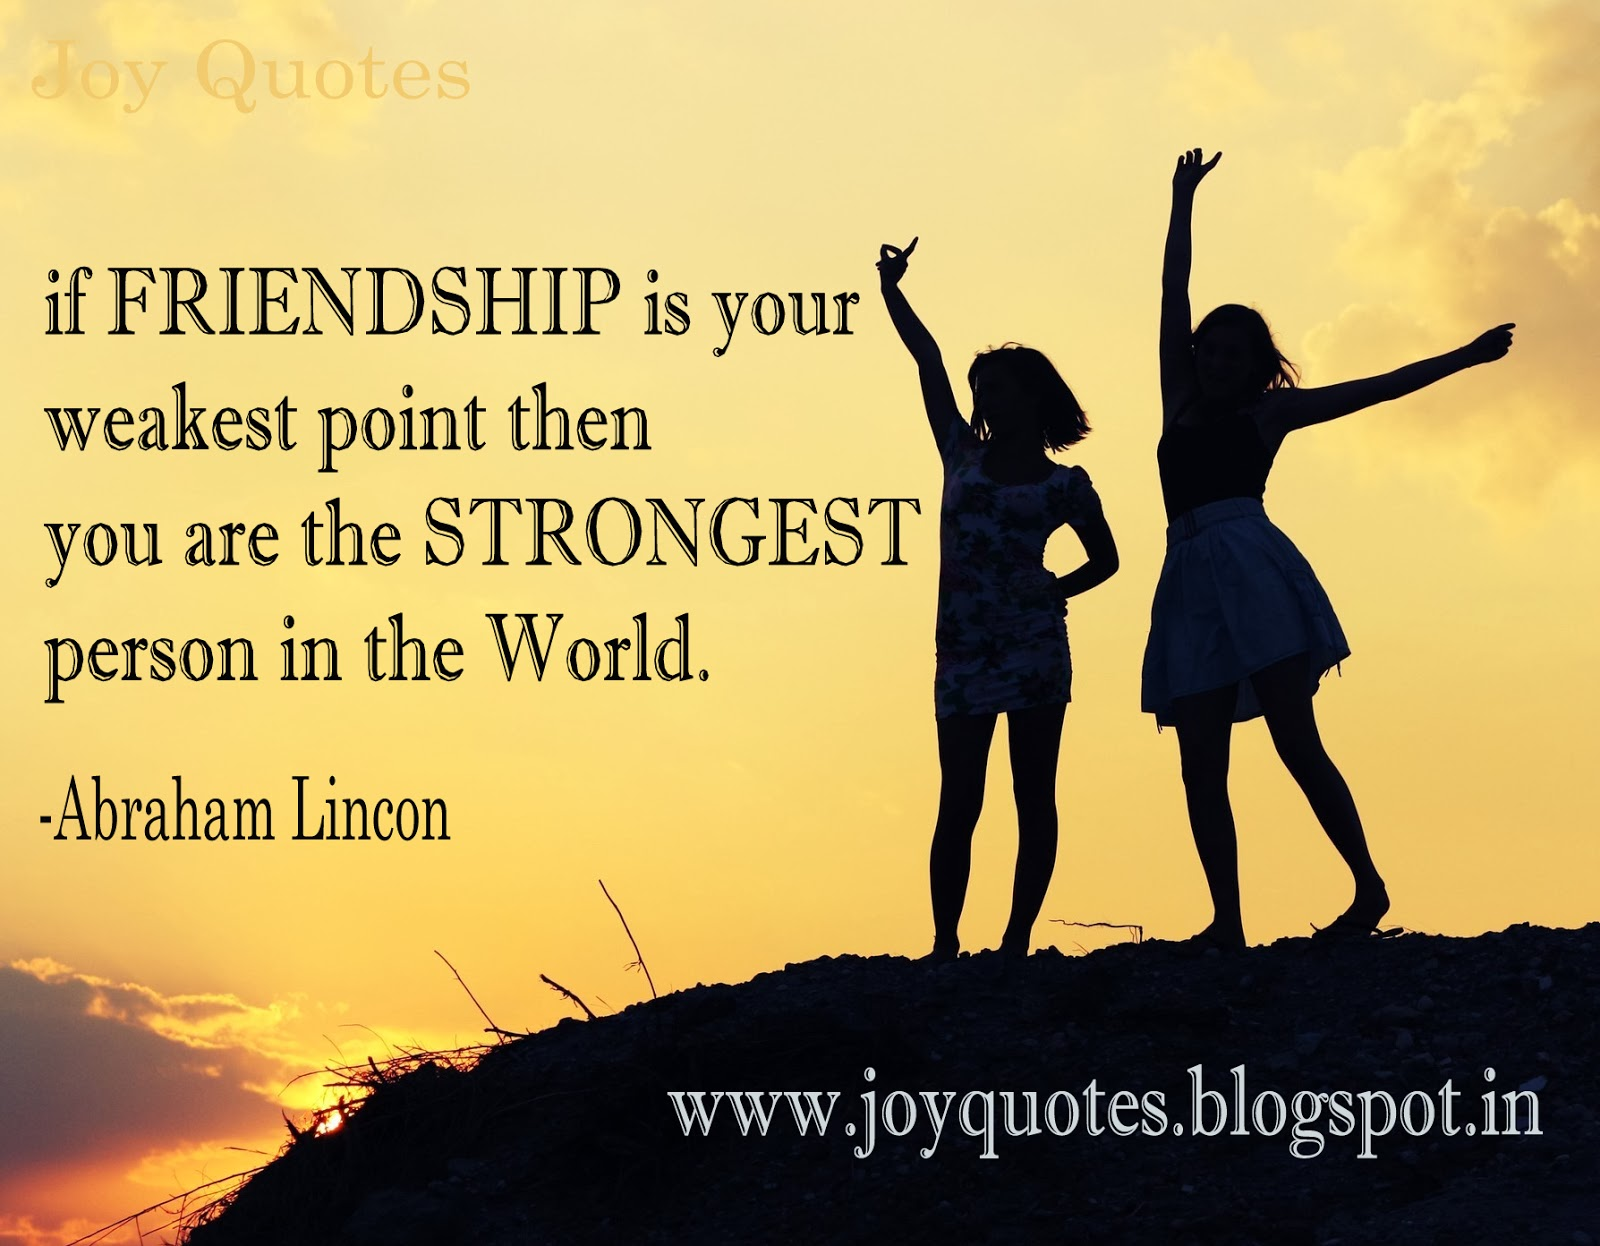 Quotes And Images About Friendship Joy Quotes Friendship Quotes